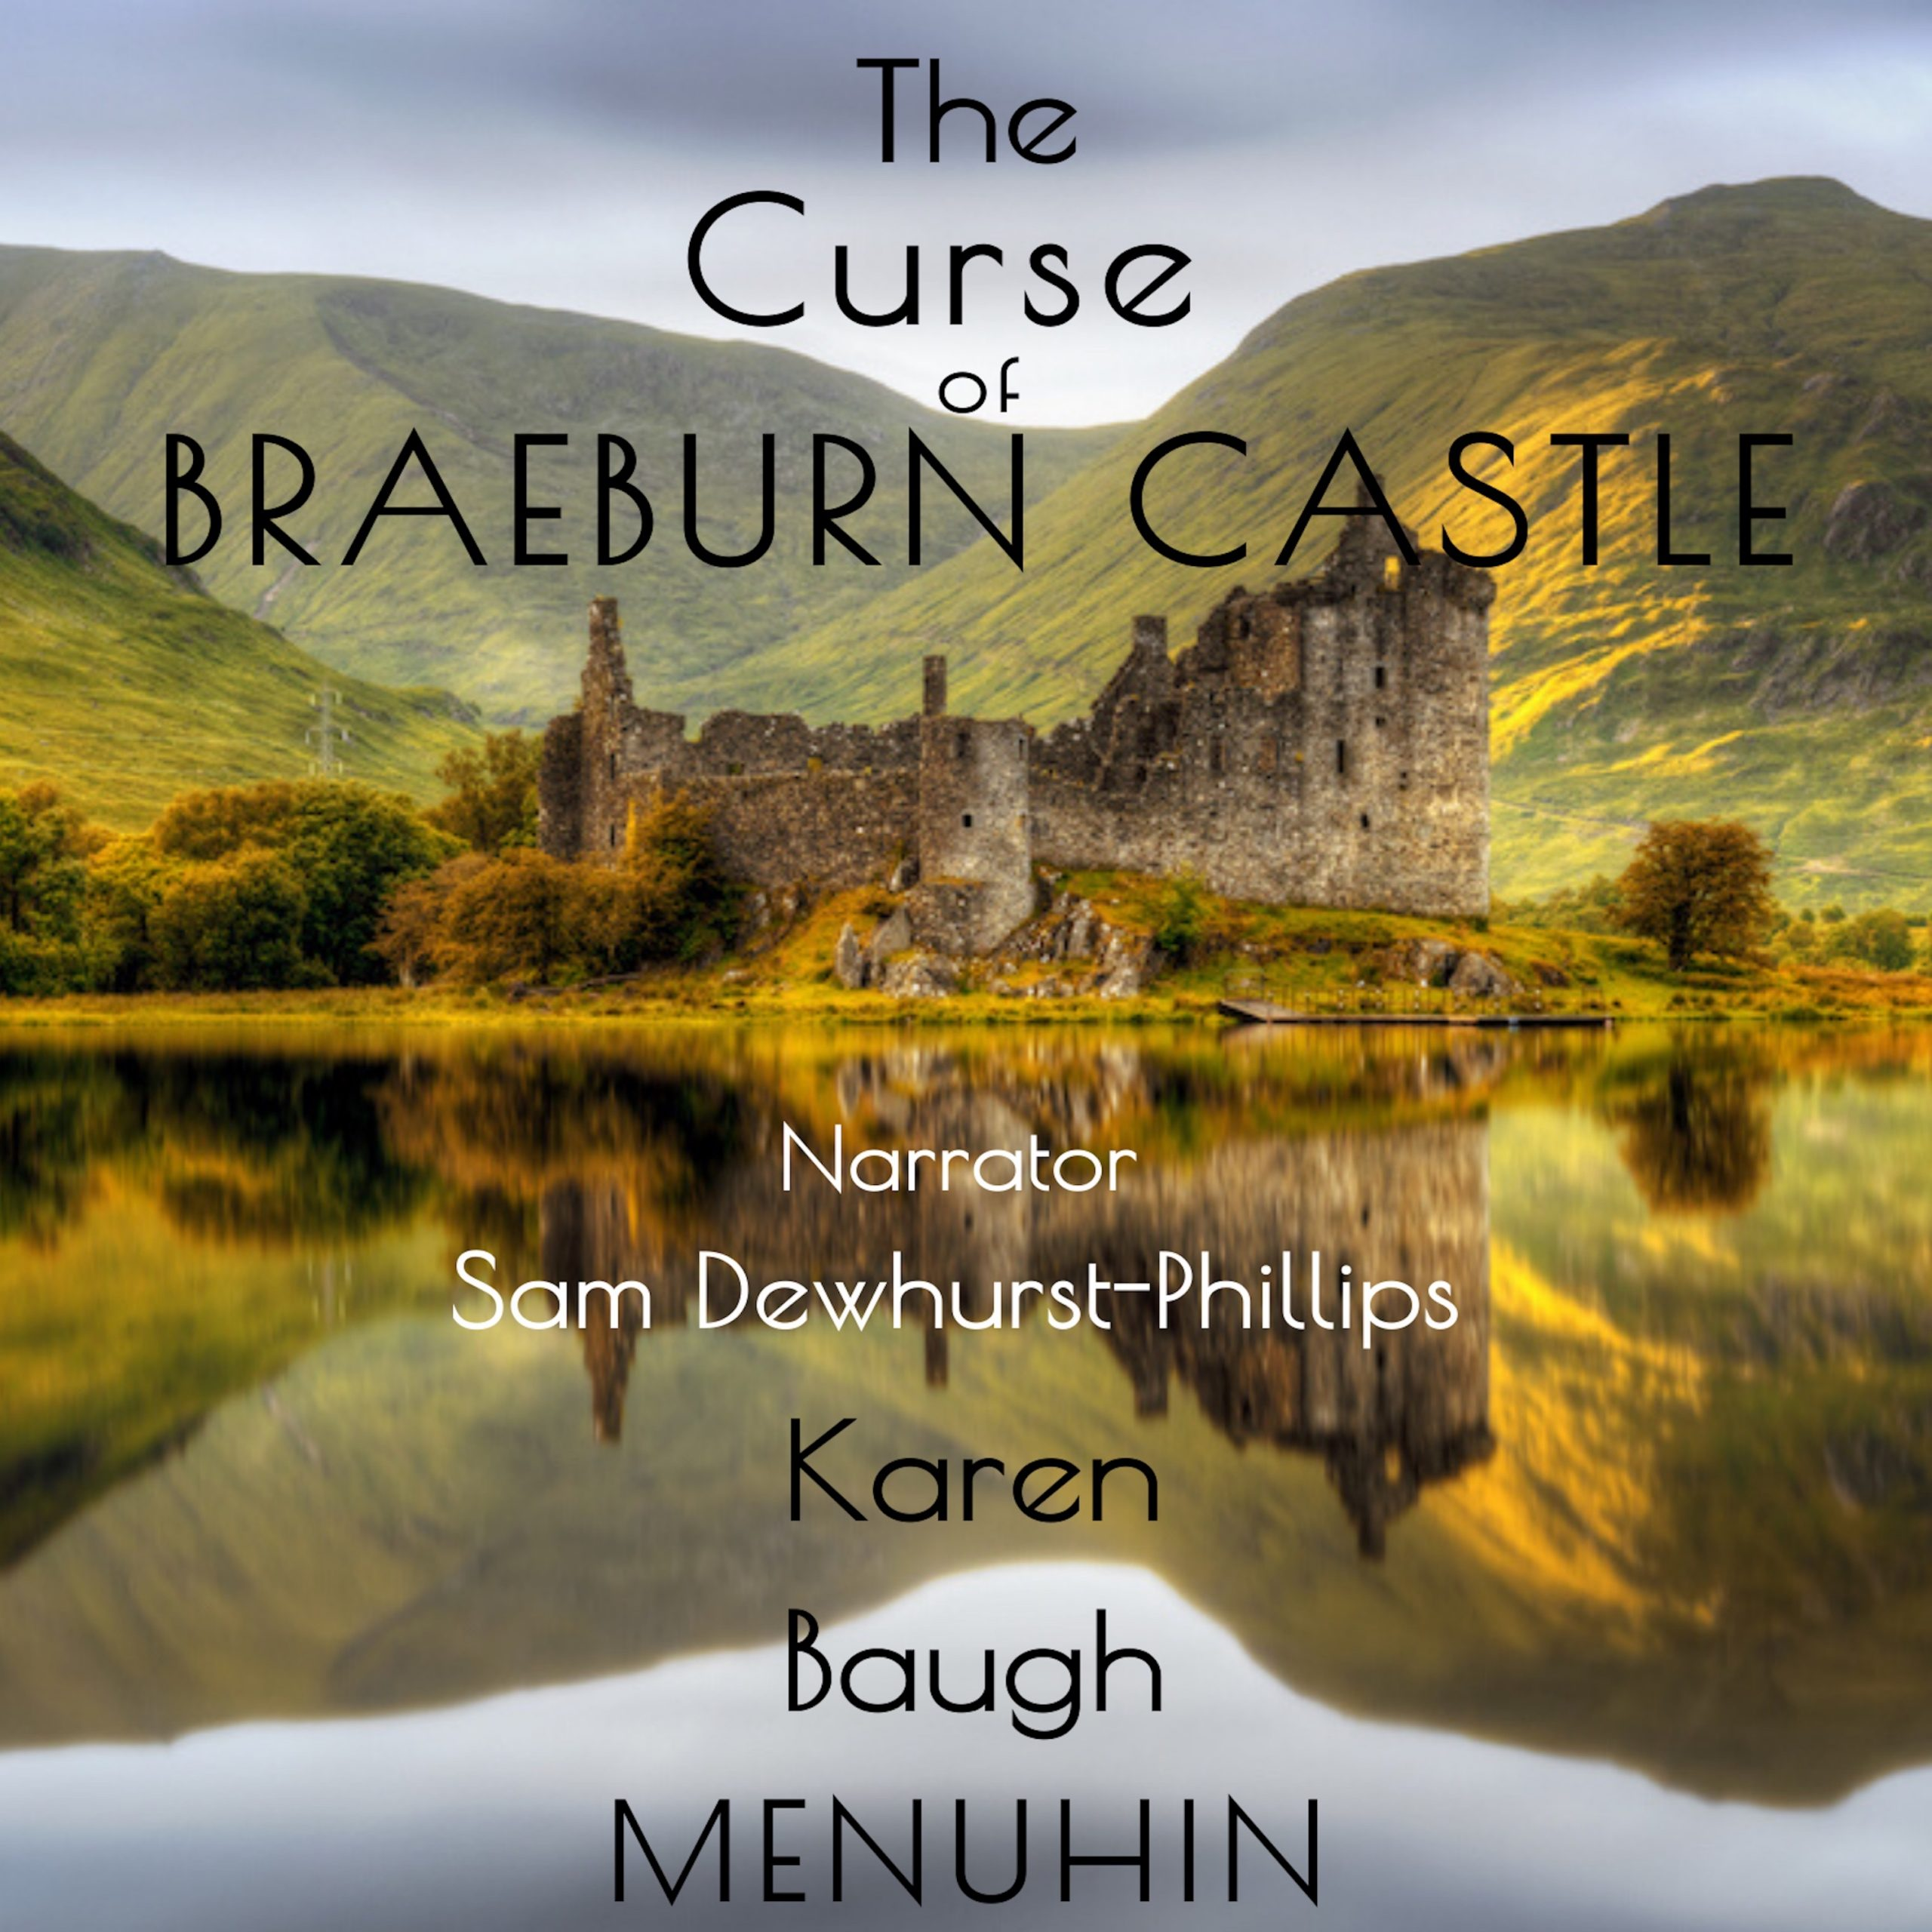 The Curse of Braeburn Castle Audiobook Cover